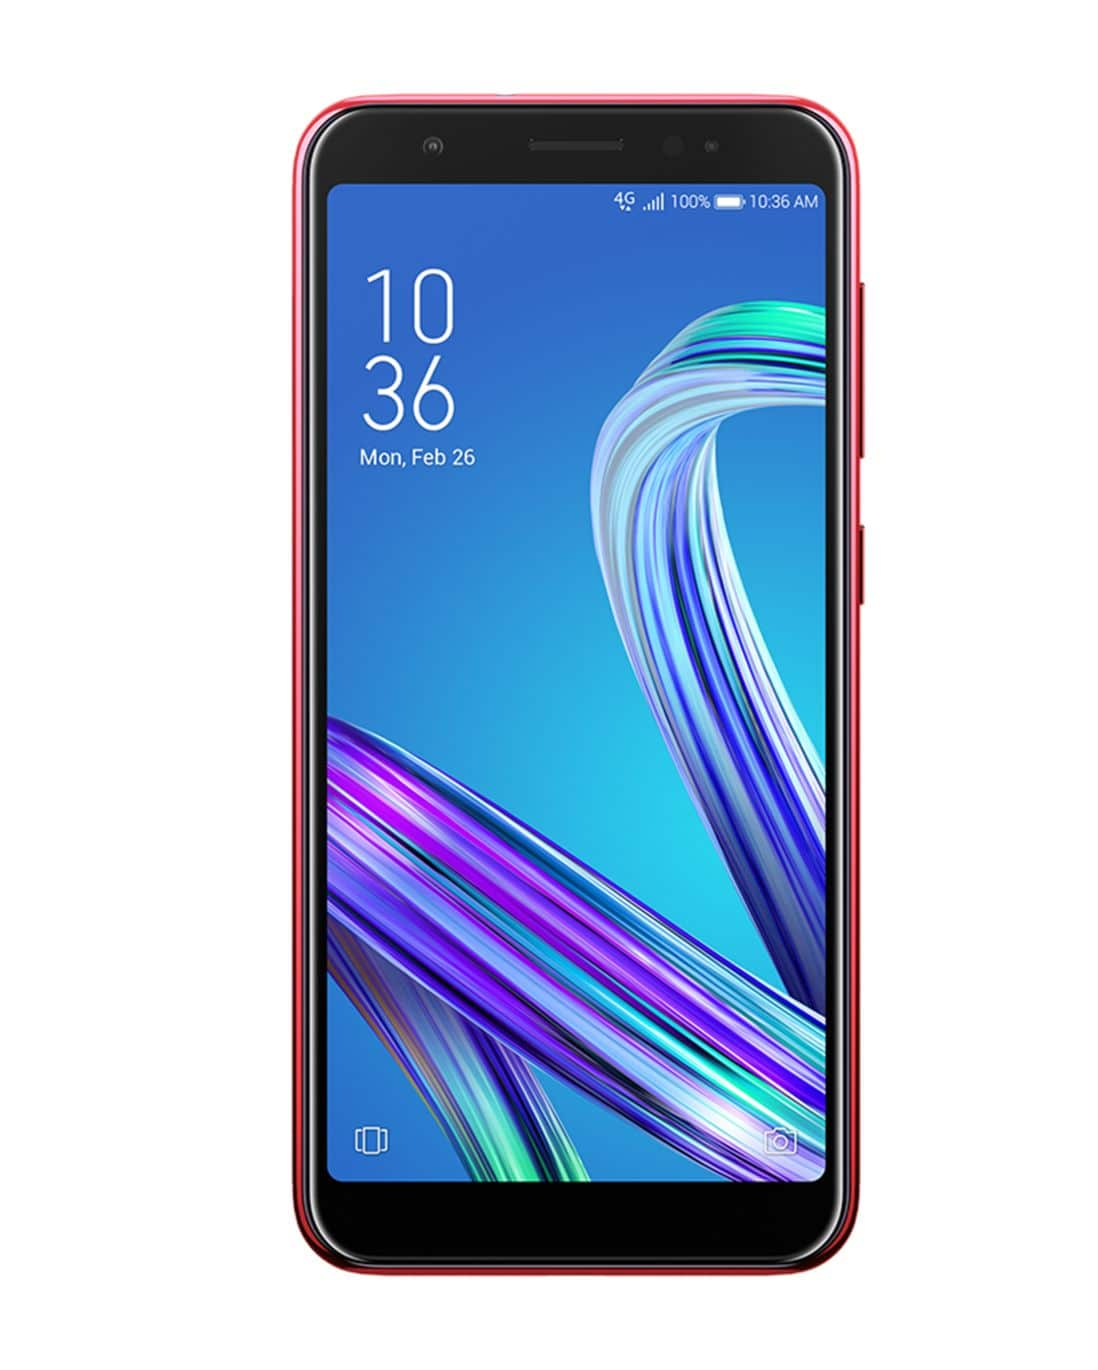 Smartphone Asus ZenFone Max M3 Dual Chip Android 9 Tela 5.5